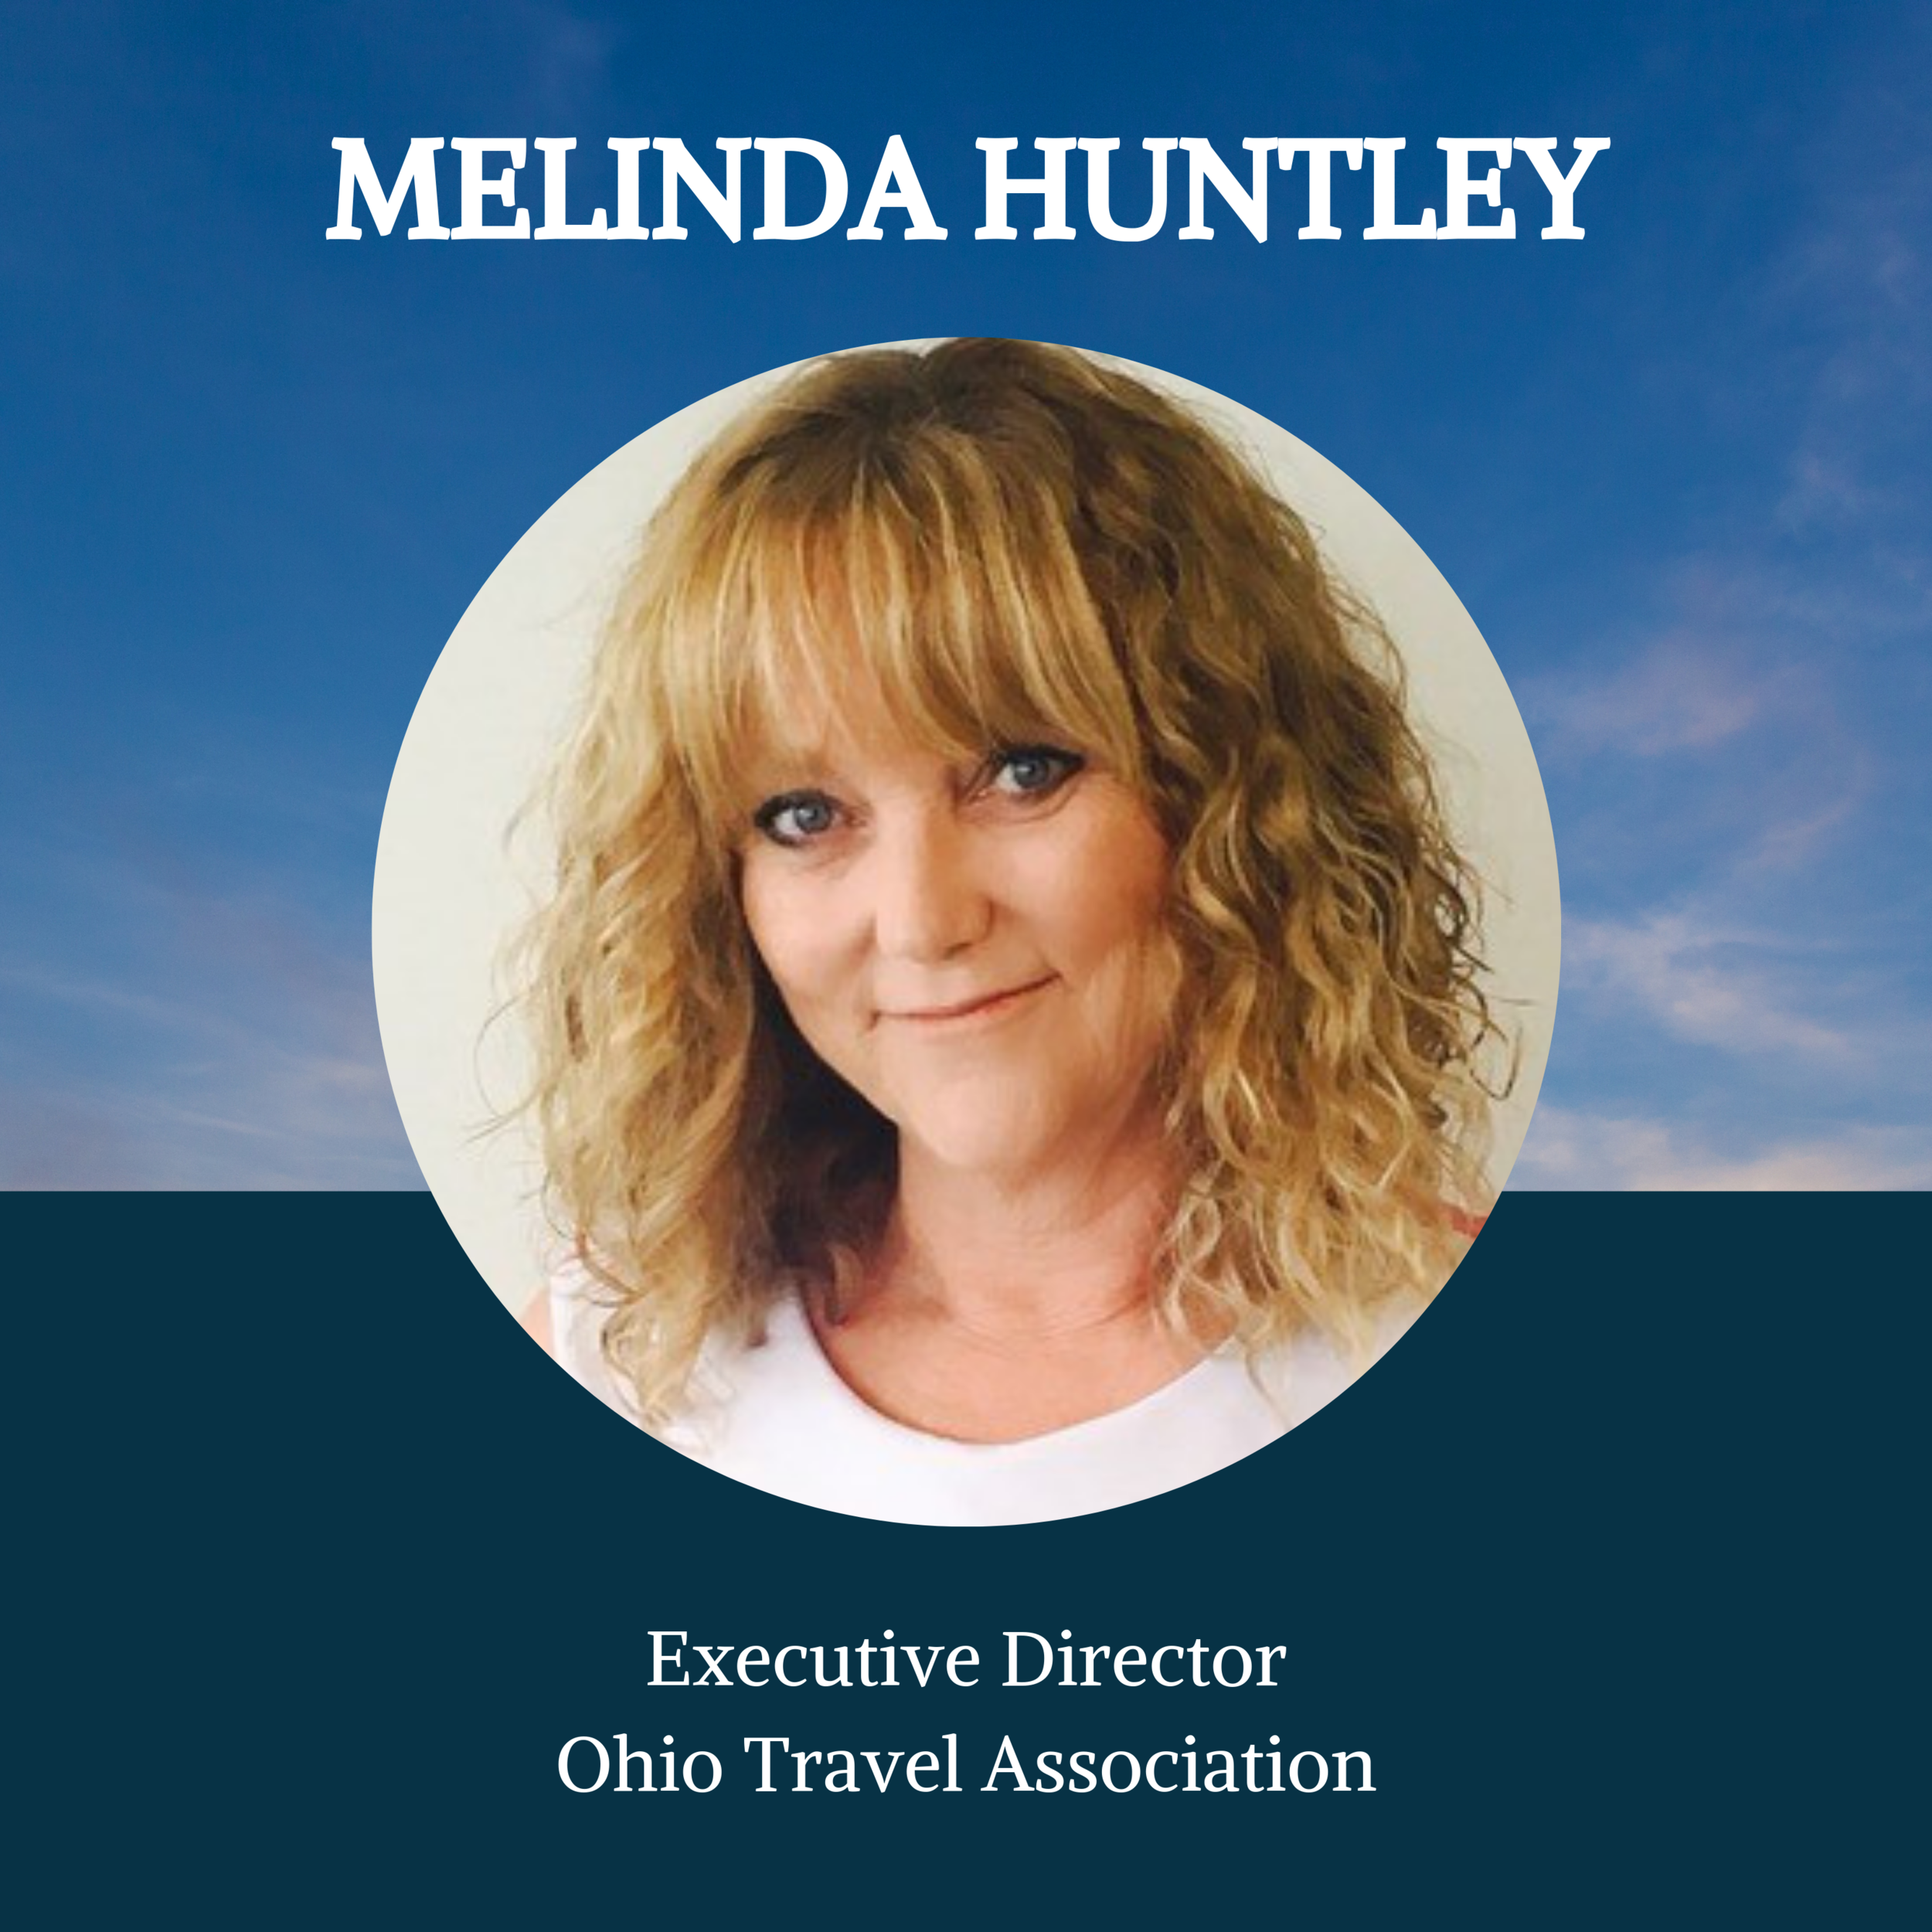 Like you, Melinda is passionate about Ohio travel. Having worked in travel-related jobs along Lake Erie for more than 25 years, she's witnessed firsthand how communities transform themselves when they embrace the travel economy. In 2012, she brought this energy and focus to Columbus as the director of the Ohio Travel Association. She started her travel career in public relations at Cedar Point, then led the Lake Erie Shores and Islands/Ottawa County Visitors Bureau and tackled sustainable tourism opportunities as tourism director for Ohio State University's Ohio Sea Grant College Program. She has a master's degree in public policy from the OSU John Glenn School of Public Affairs and is an avid (aka obsessed) yogi and a certified yoga teacher. She enjoys bricks-and-mortar bookstores, hiking and biking, coffee shops, live theatre, kayaking and traveling the nooks and crannies of Ohio.